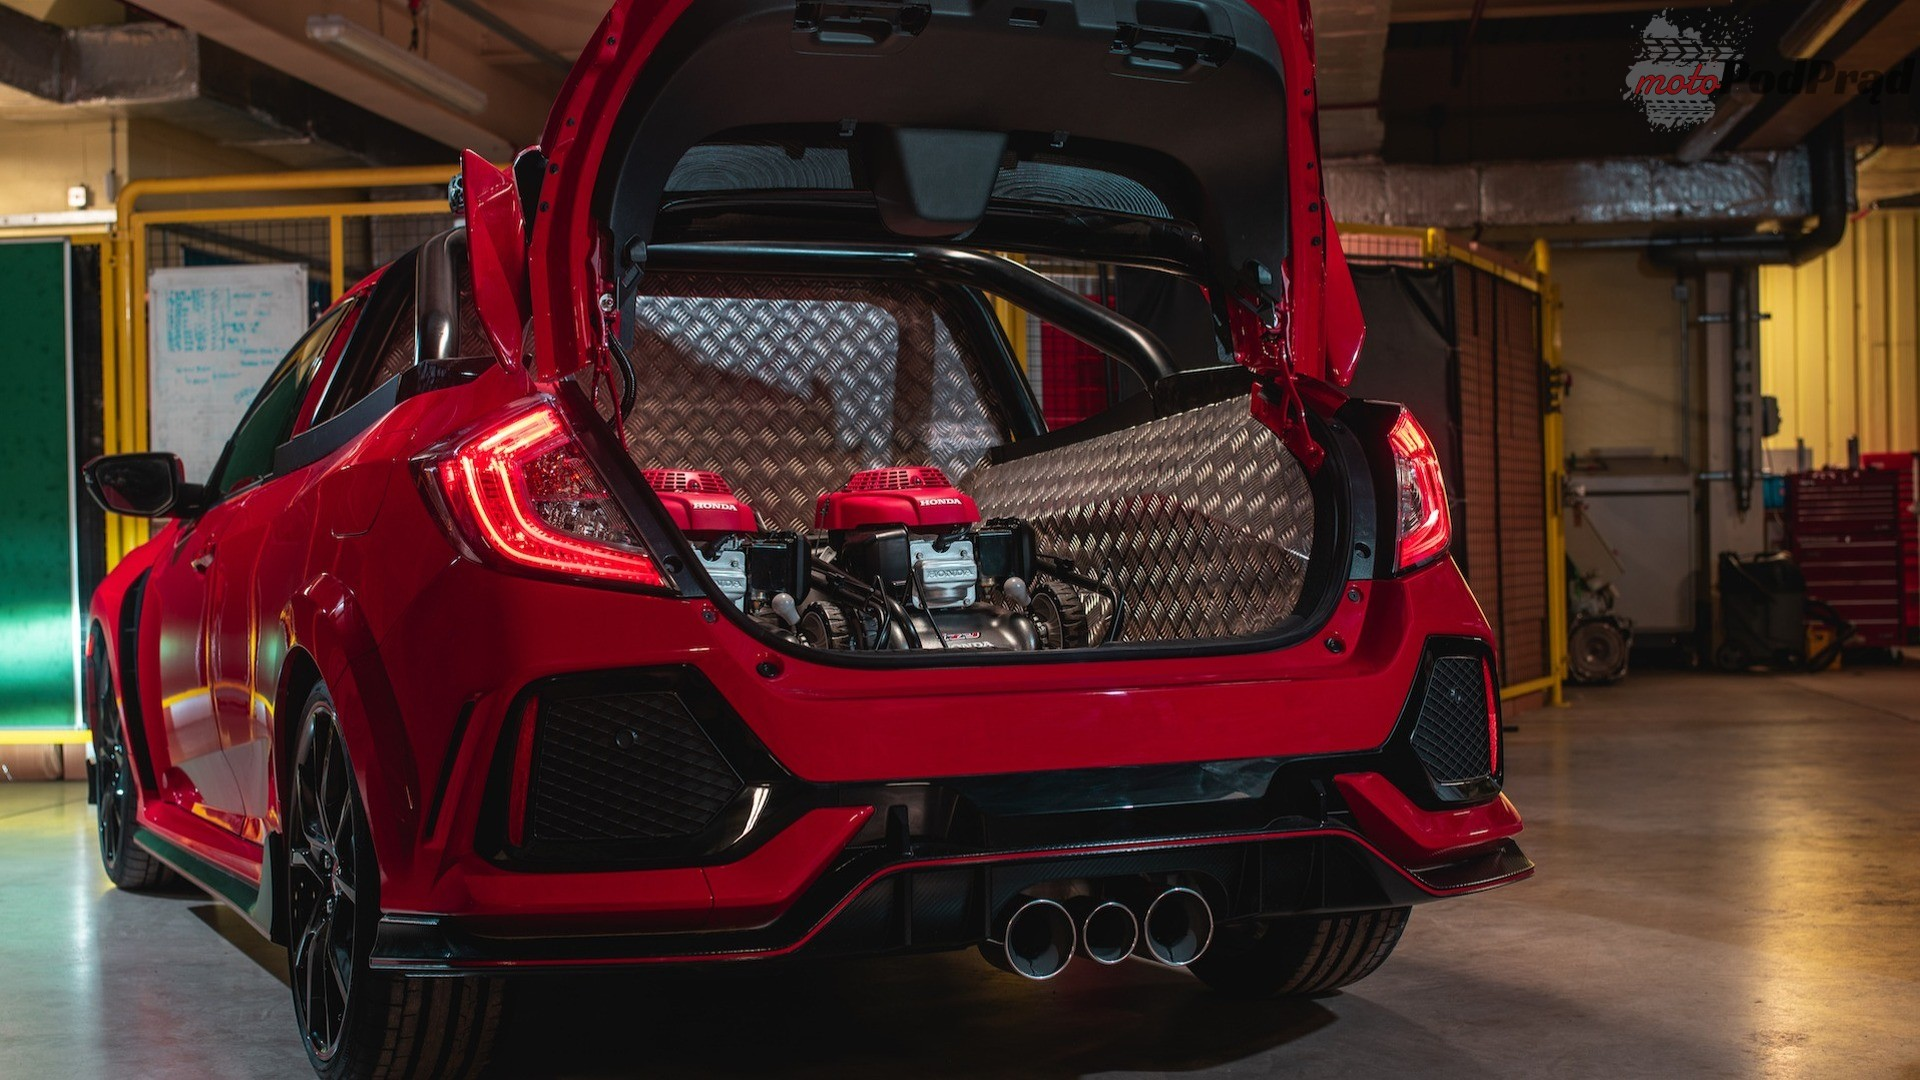 honda civic type r pick up 2 Zrobili z Hondy Civic Type R pickupa